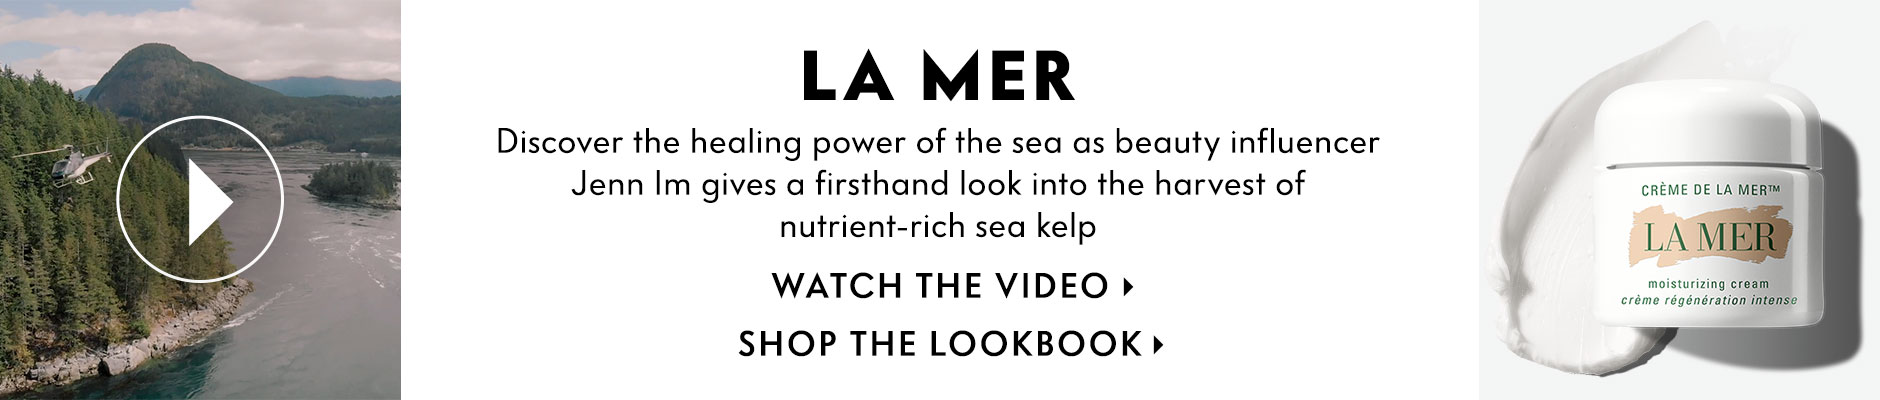 Mystery of La Mer Lookbook